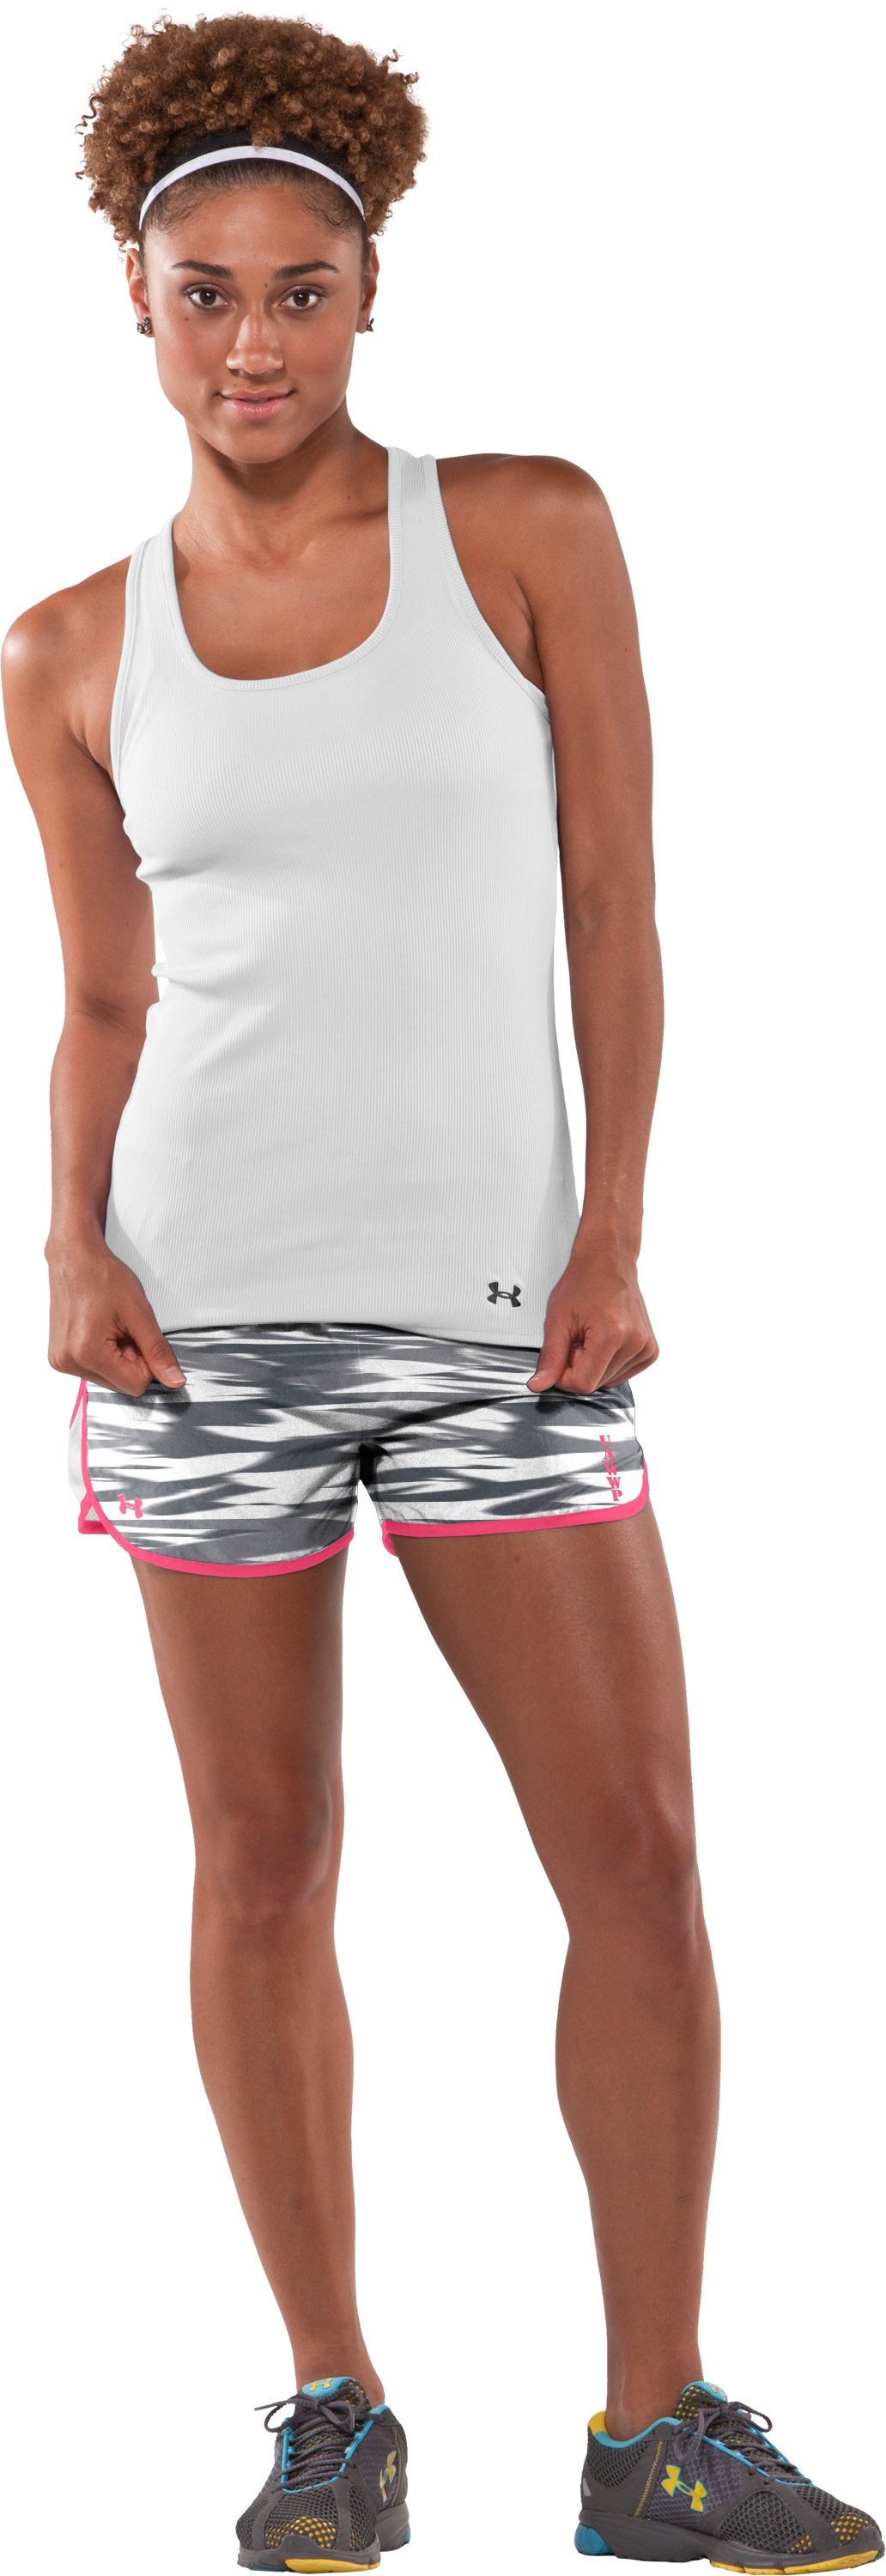 Women's WWP Training Short, Charcoal, Front